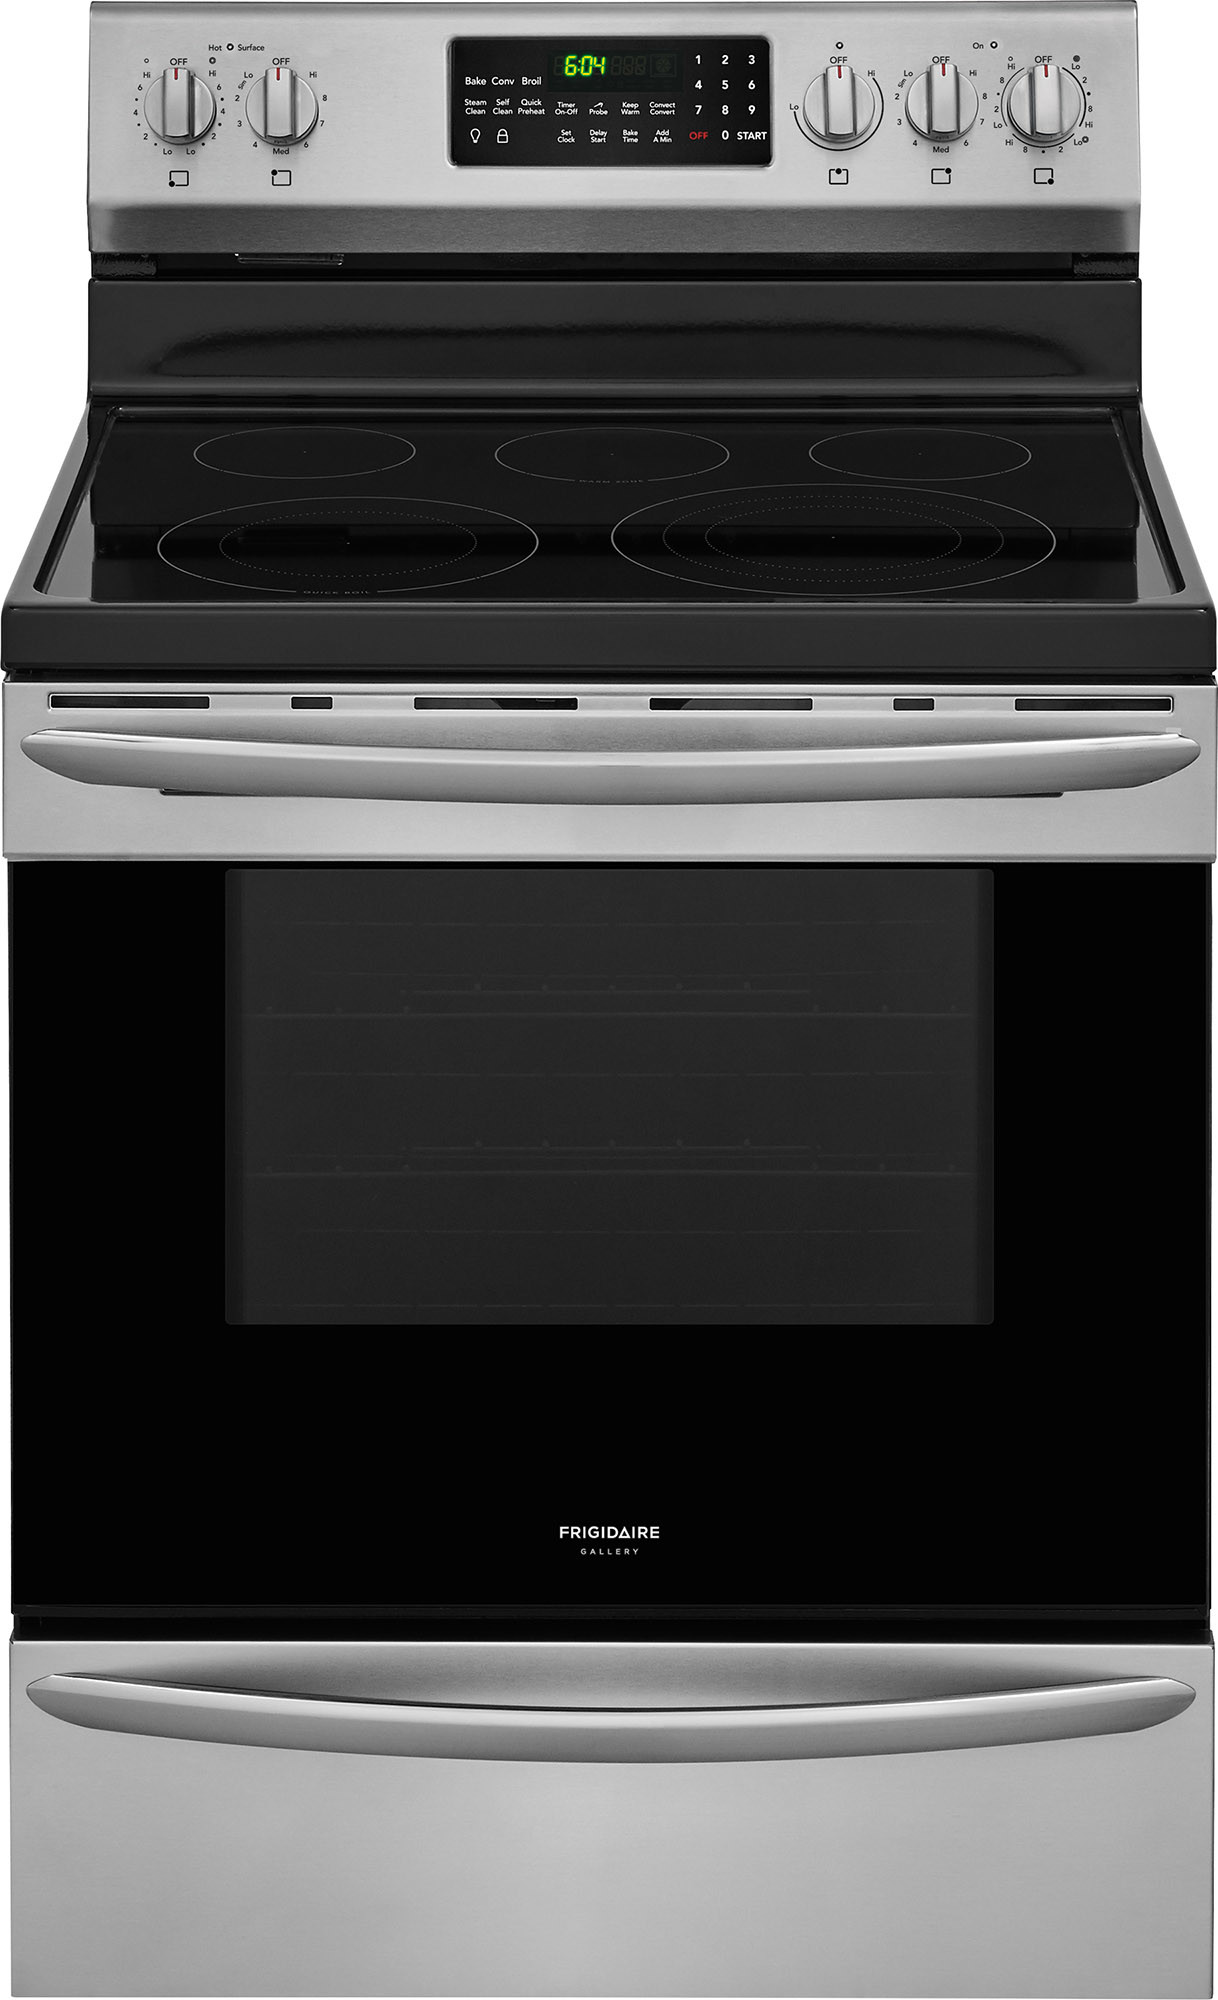 Frigidaire FGEF3059T, Glass Cooktop, Stainless Steel